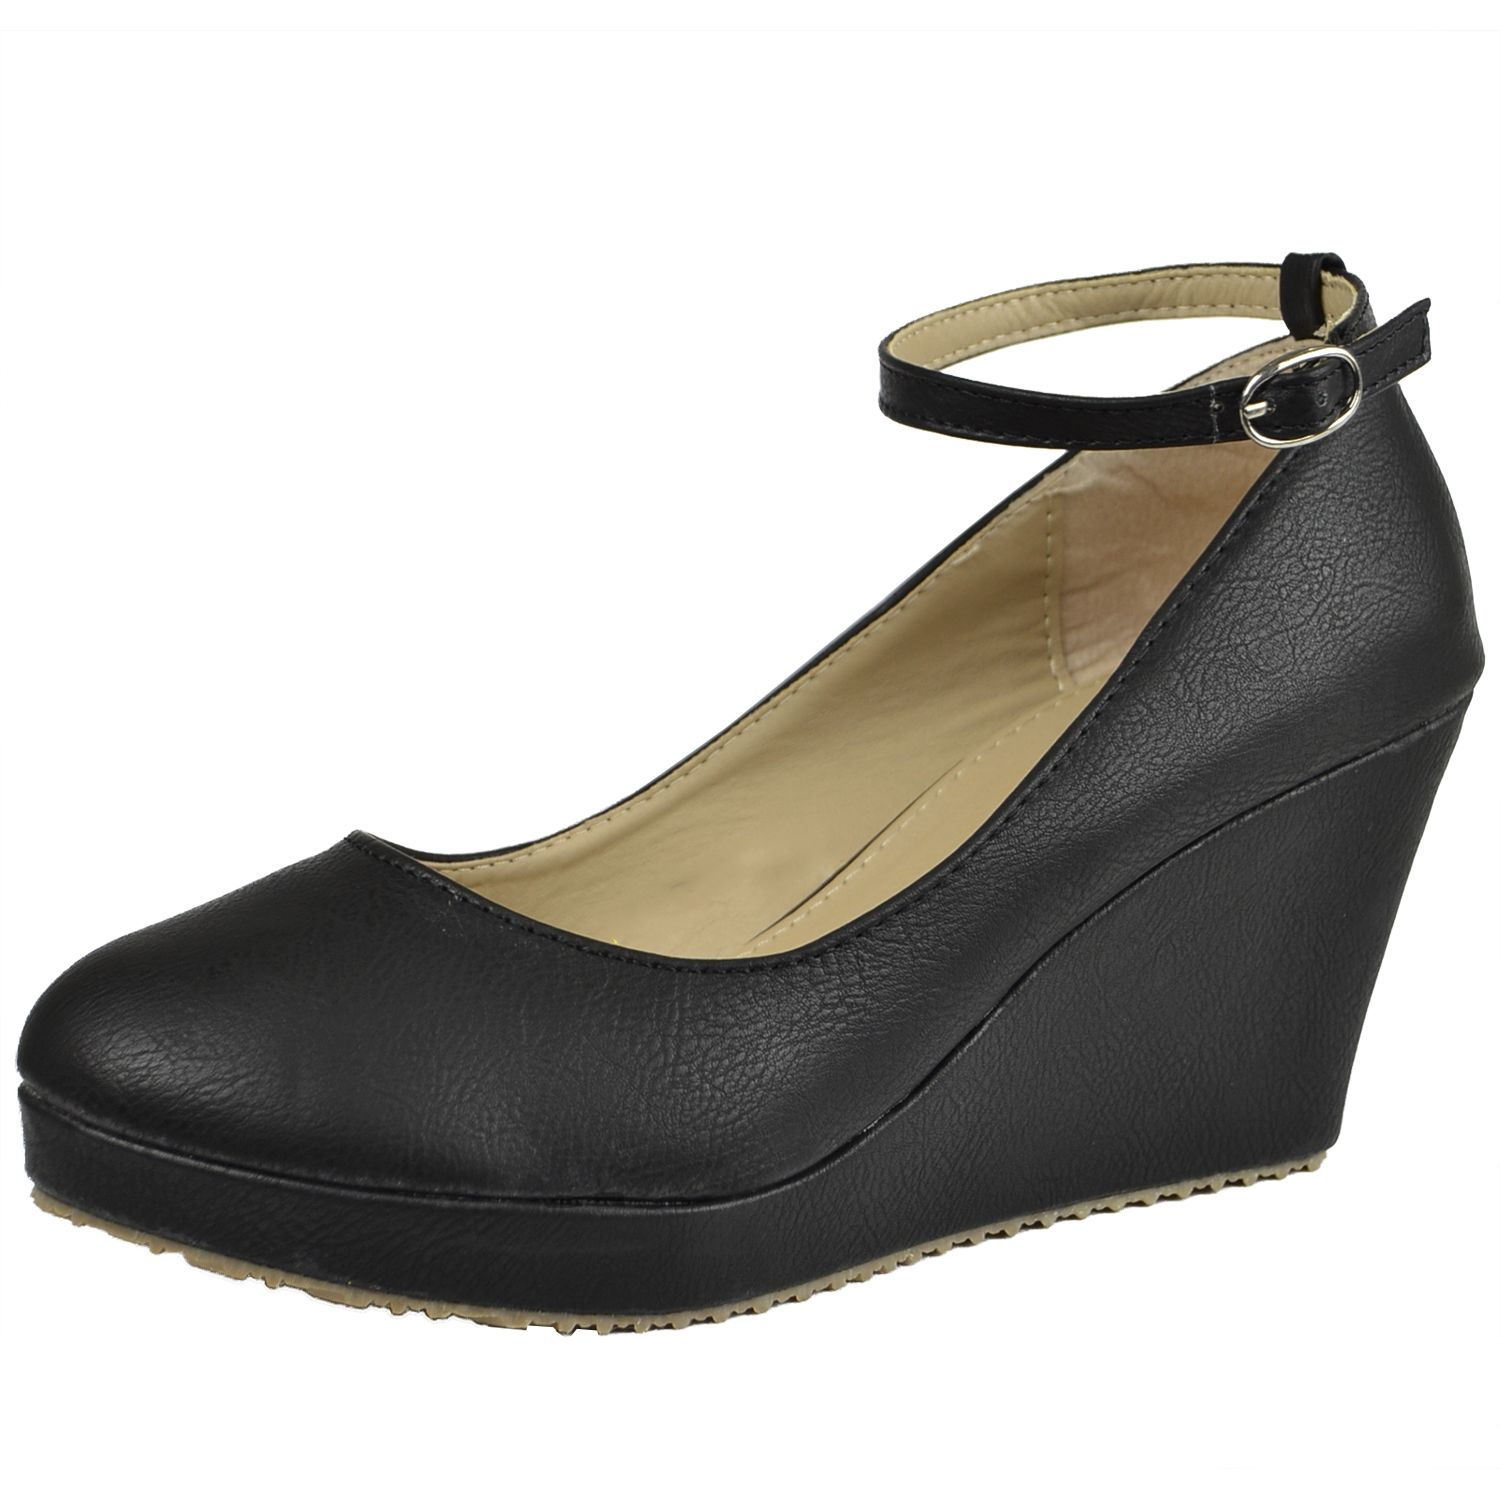 Womens Platform Shoes Ankle Strap Closed Toe Mary Jane Faux